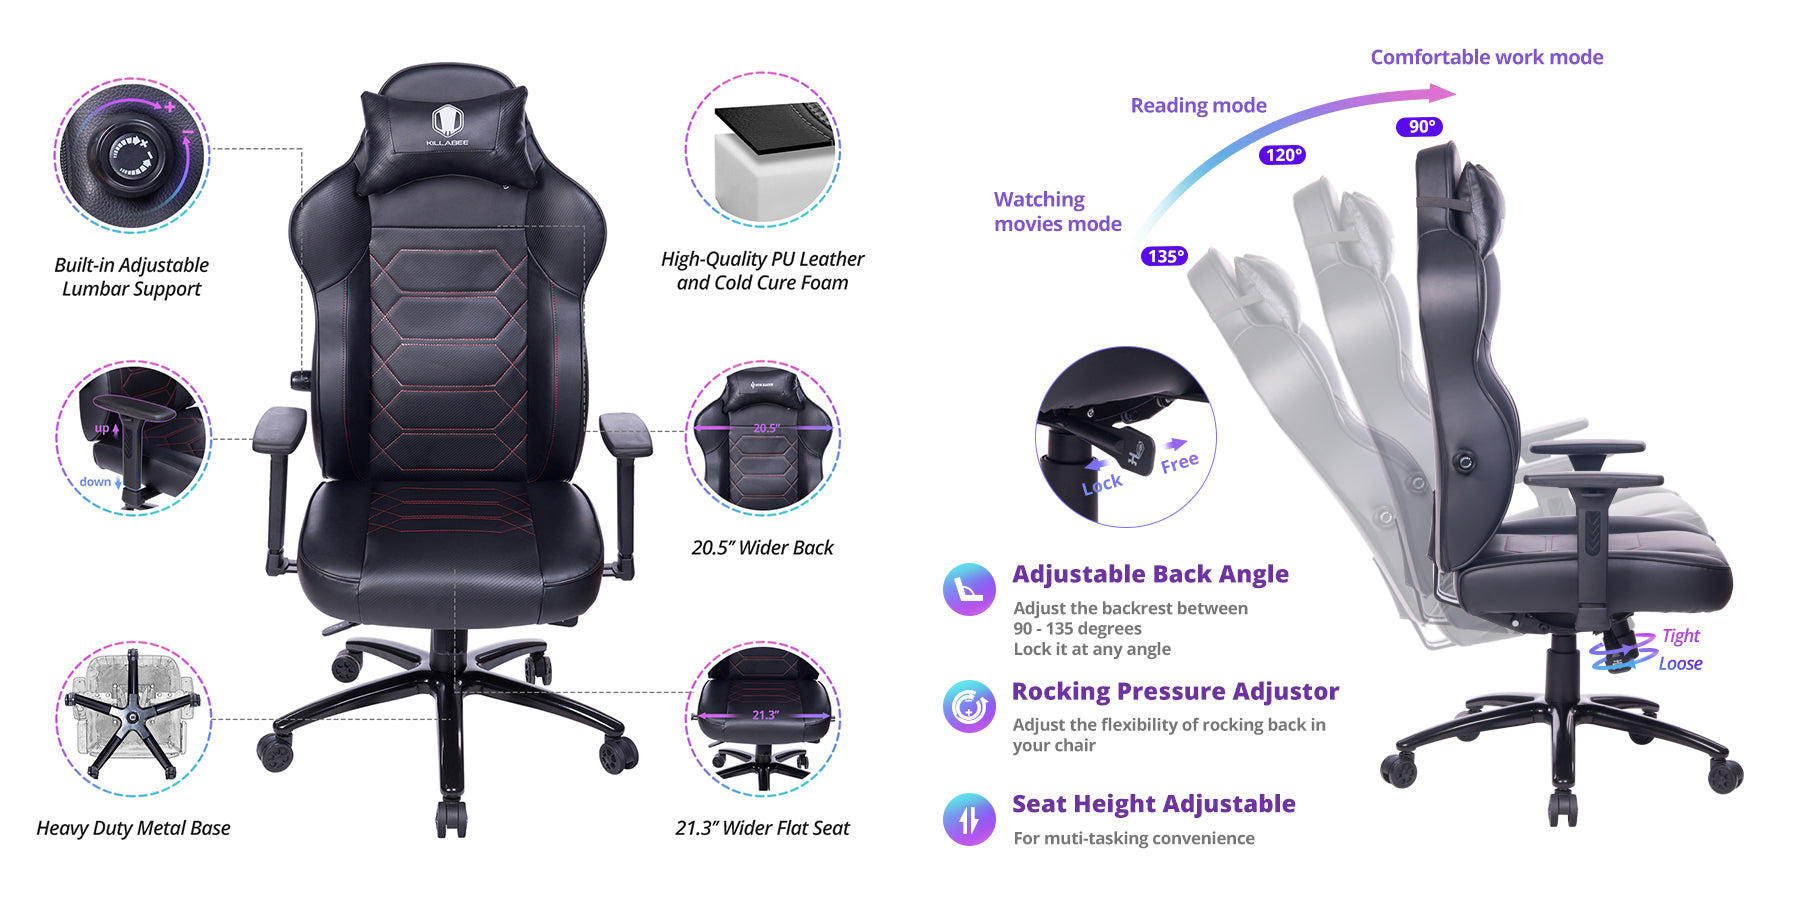 killabee 8272 gaming chair adjustability